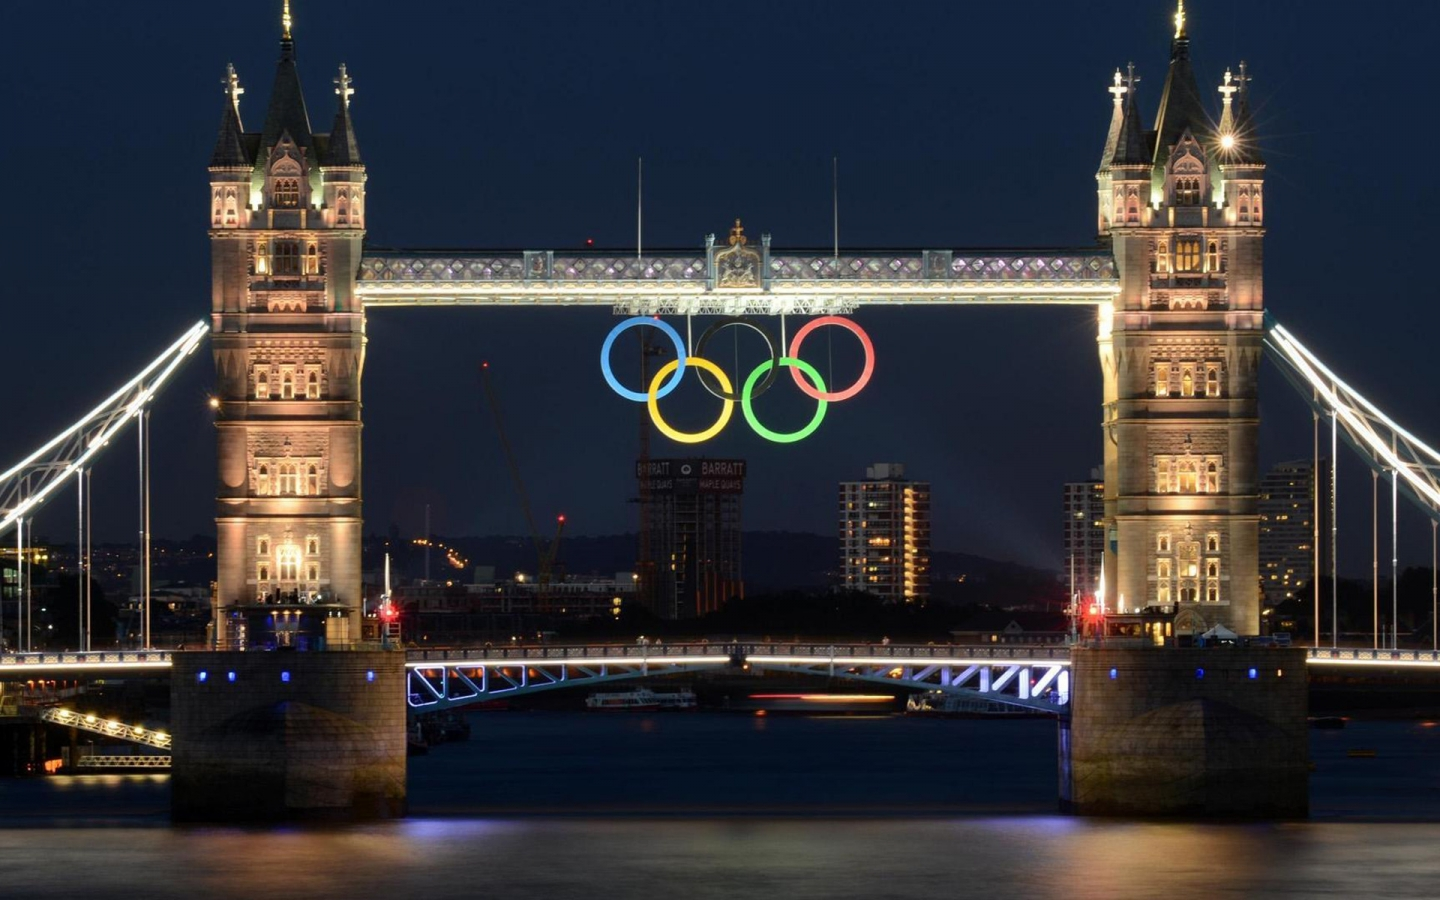 London Bridge 2012 Olympics for 1440 x 900 widescreen resolution